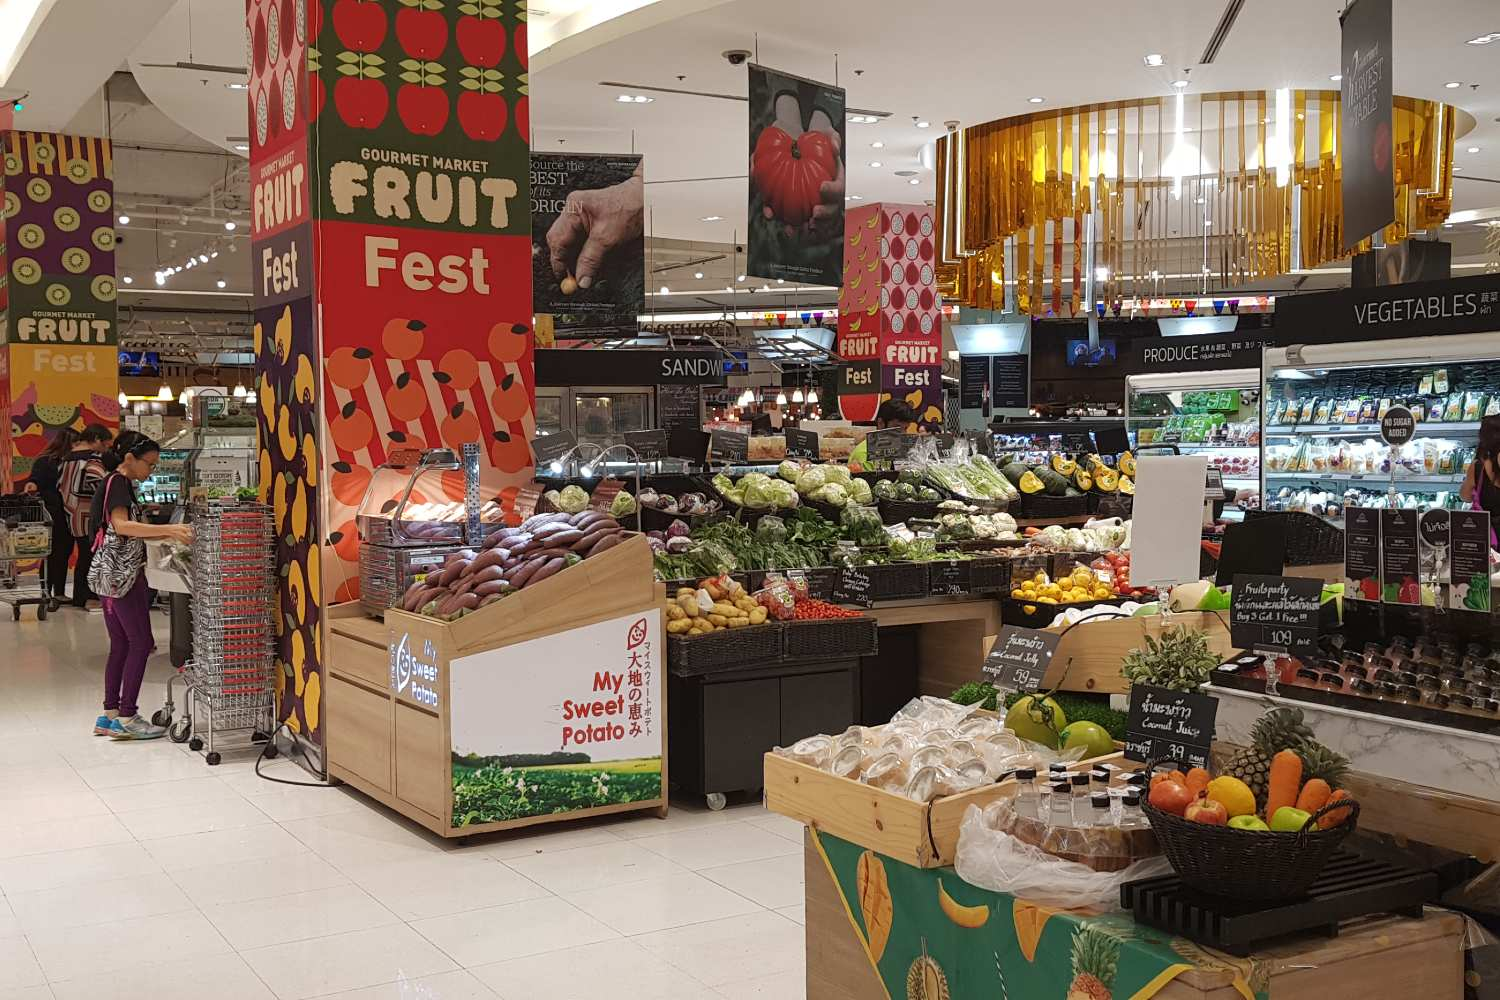 Fruit and vegetable department of the Gourmet Market (supermarket) in Siam Paragon